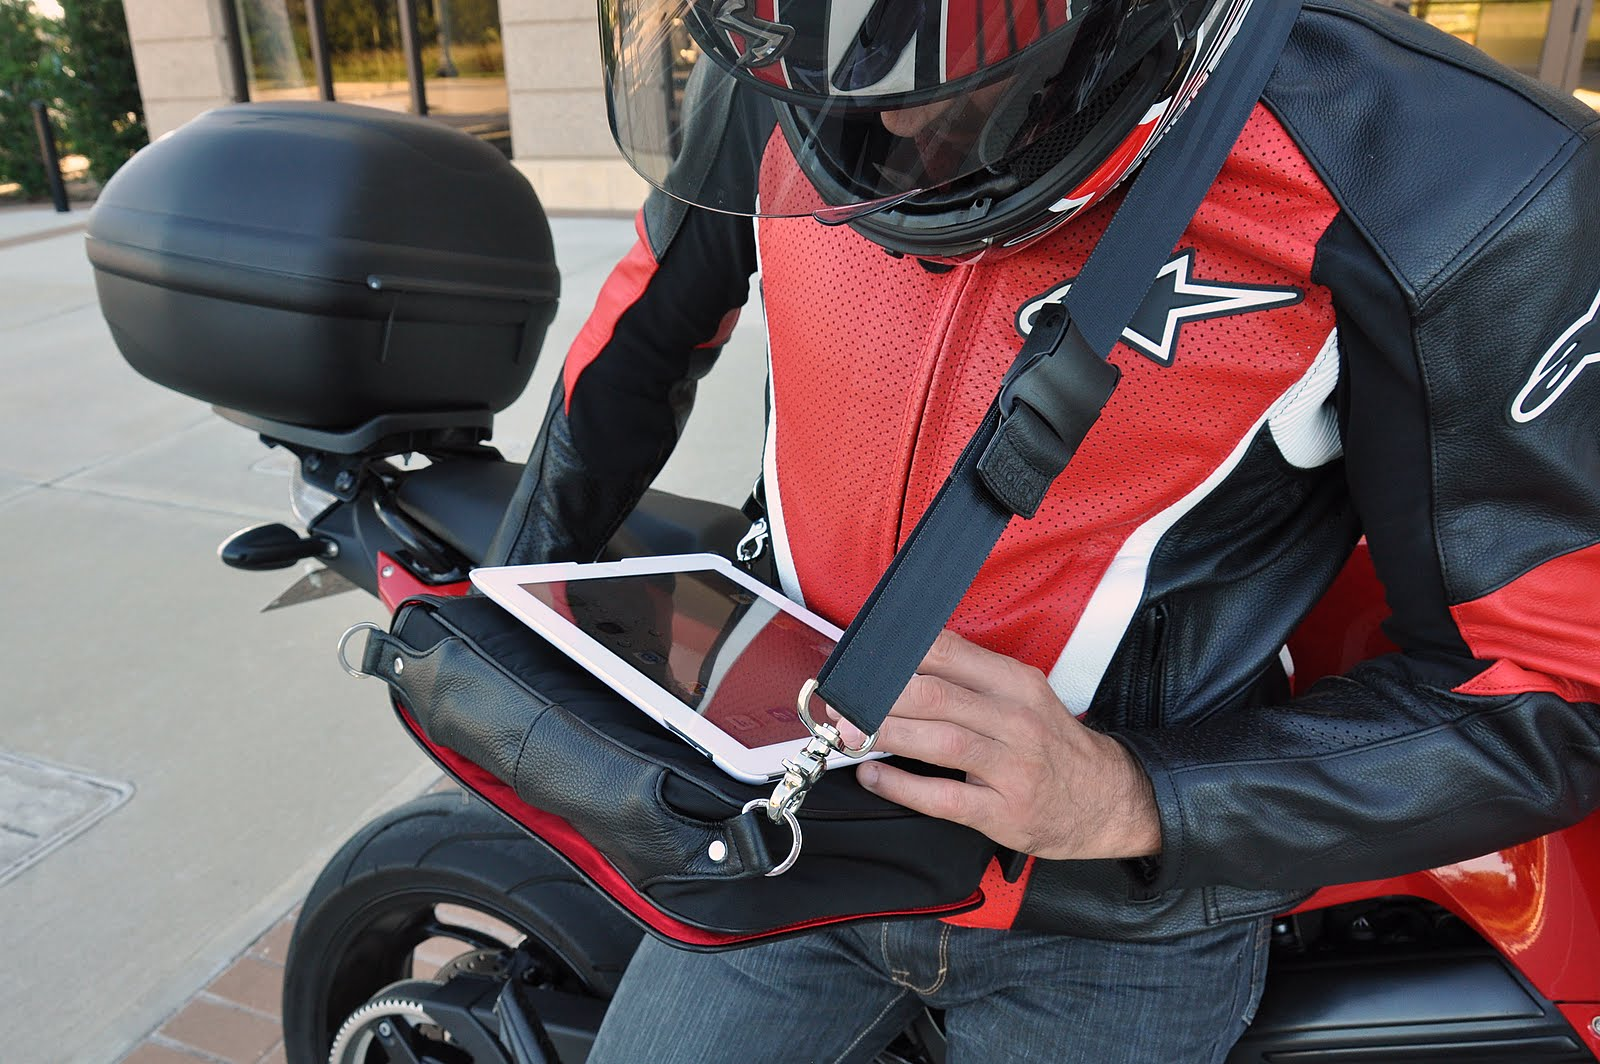 iPad messenger bag Platforma in use - both hands free to type